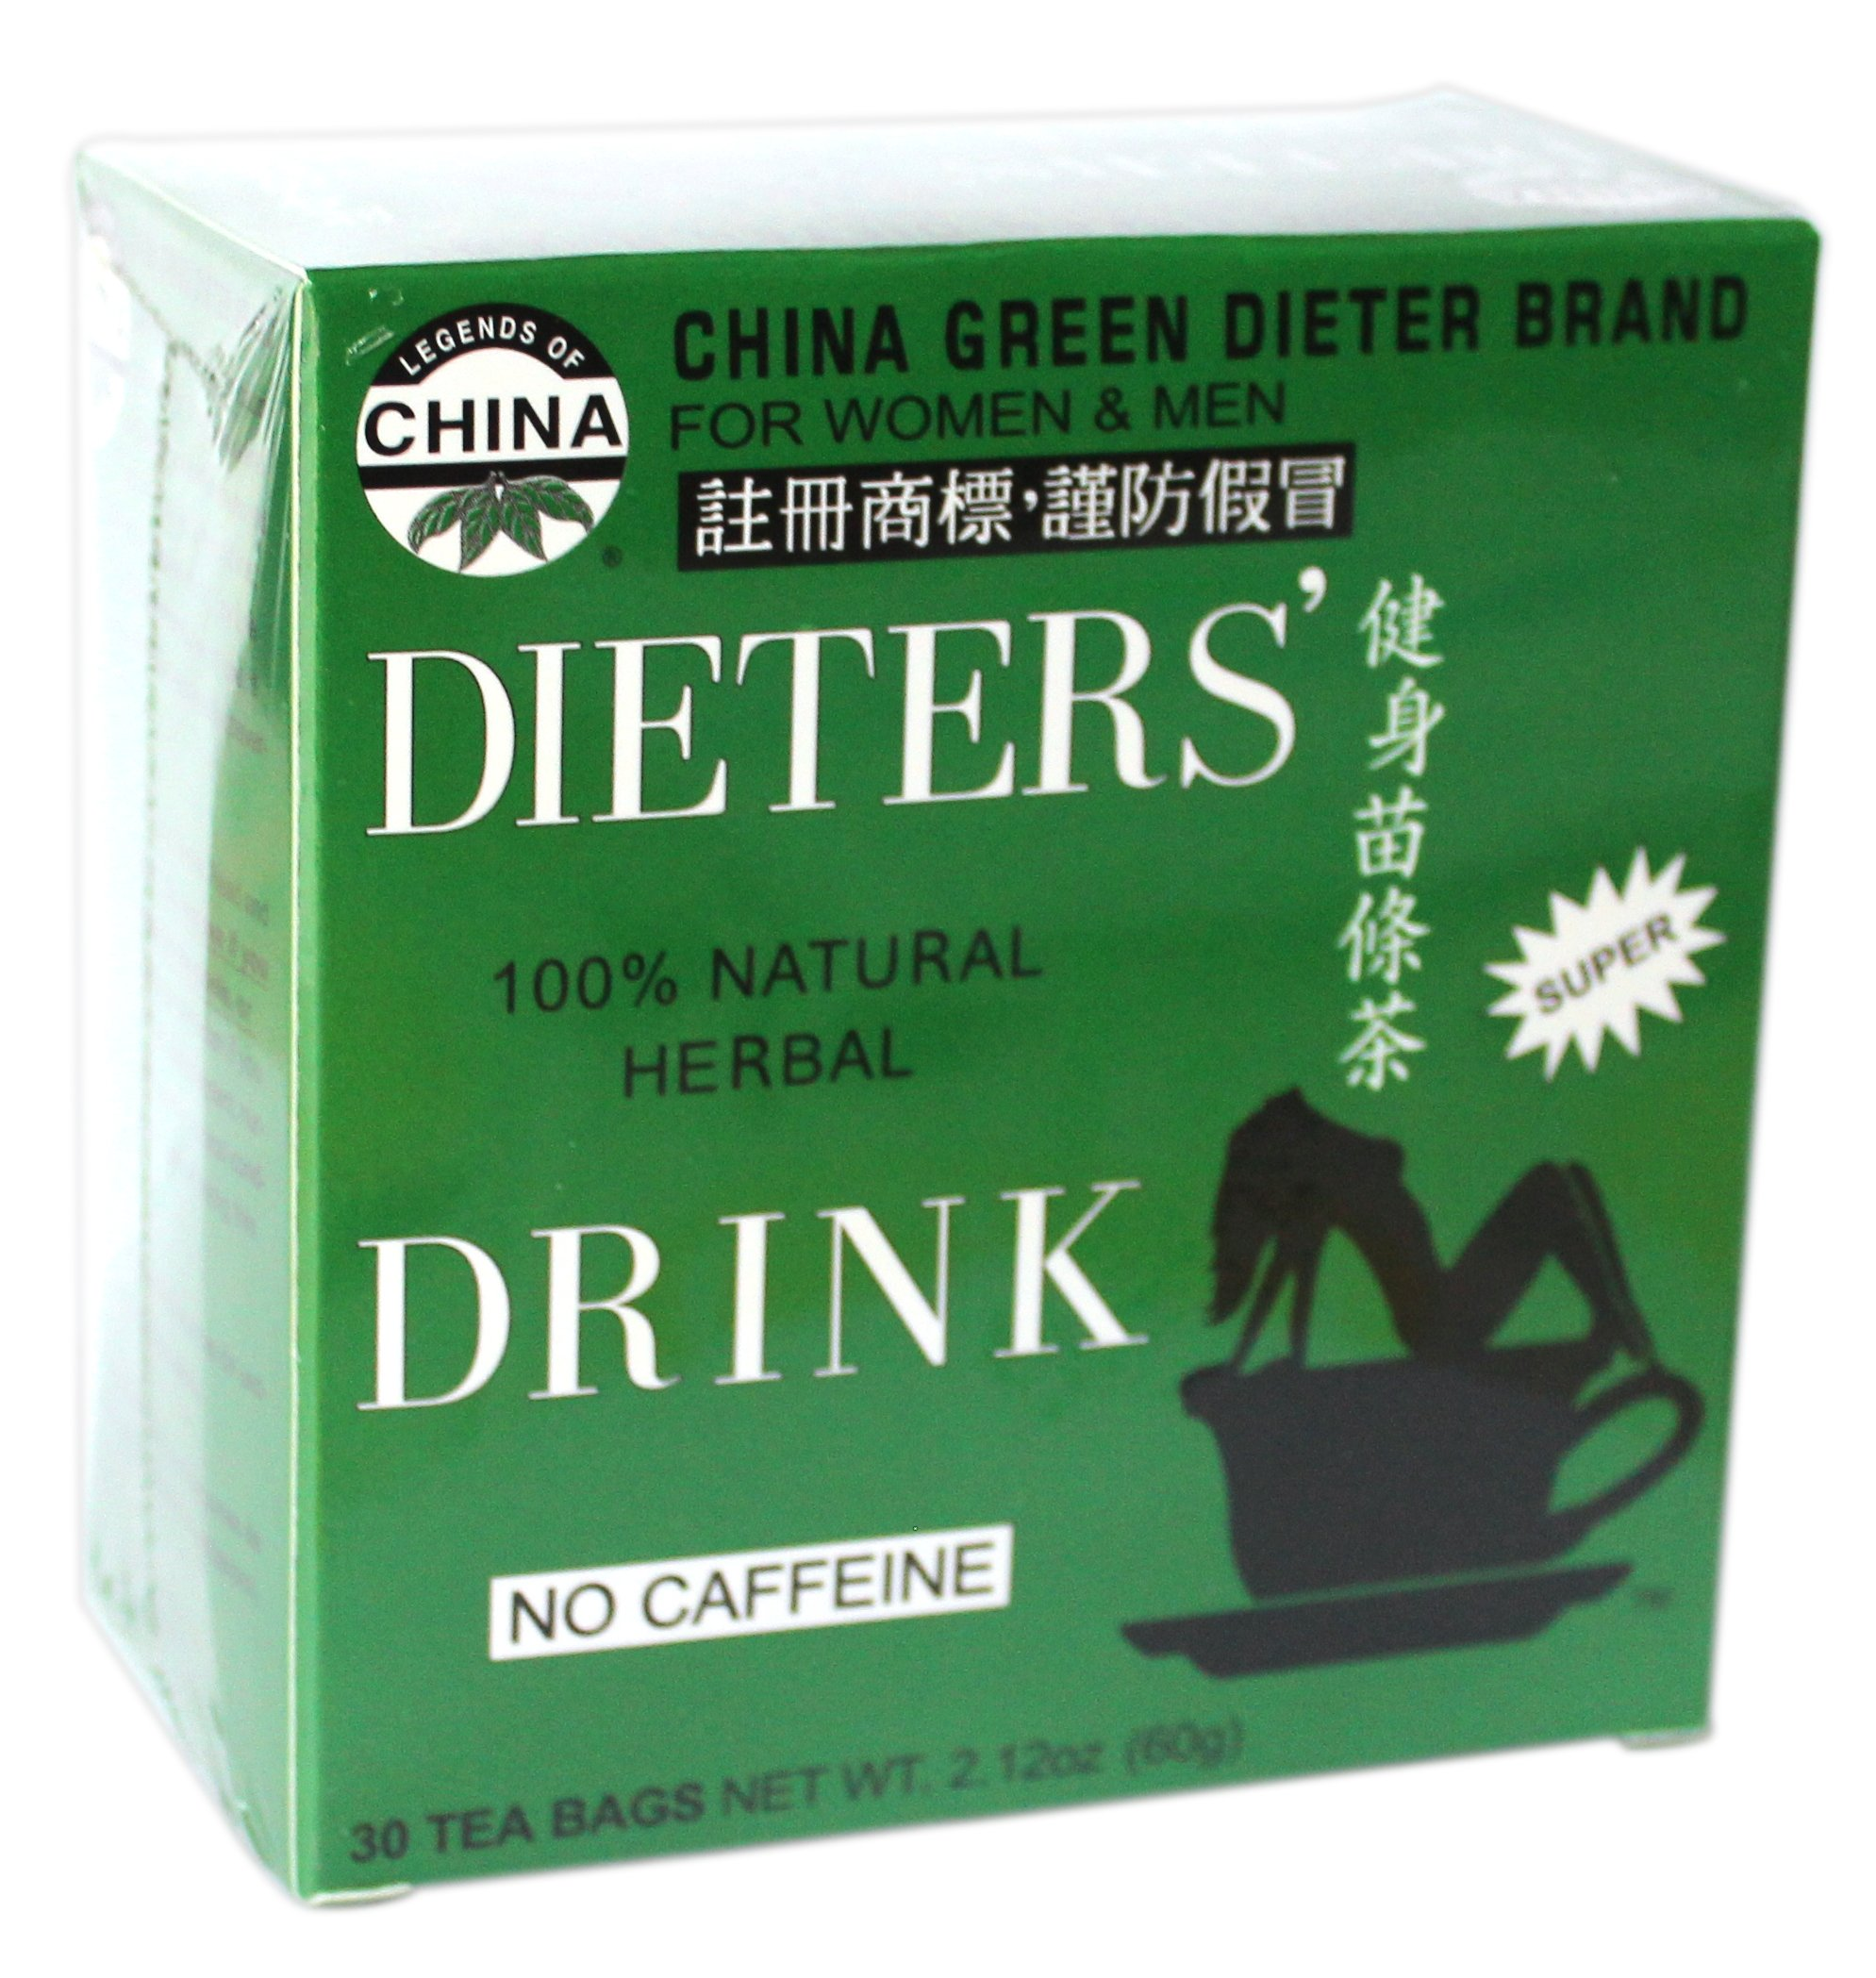 Uncle-Lees-China-Green-Dieters-Tea-Dieters-Drink-For-Weight-Loss-30-Tea-Bags-